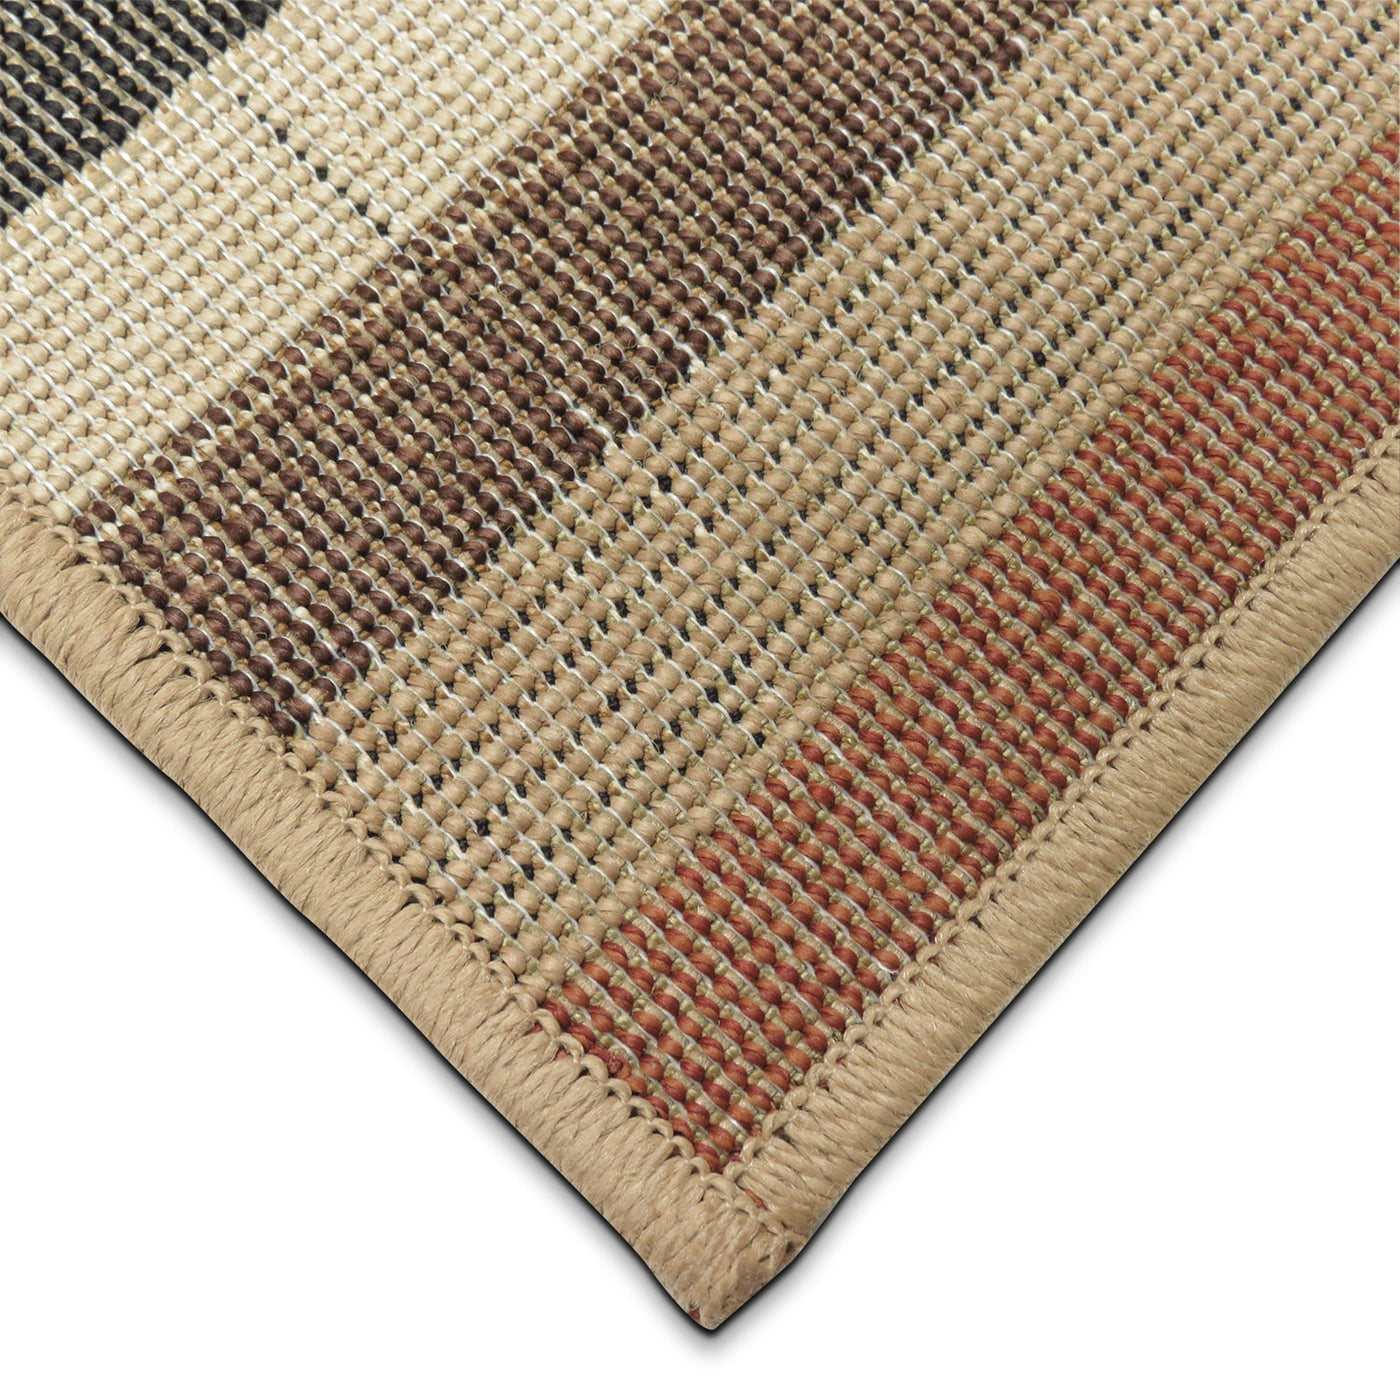 Tonal Striped Area Rug 7 X 10 The Brick